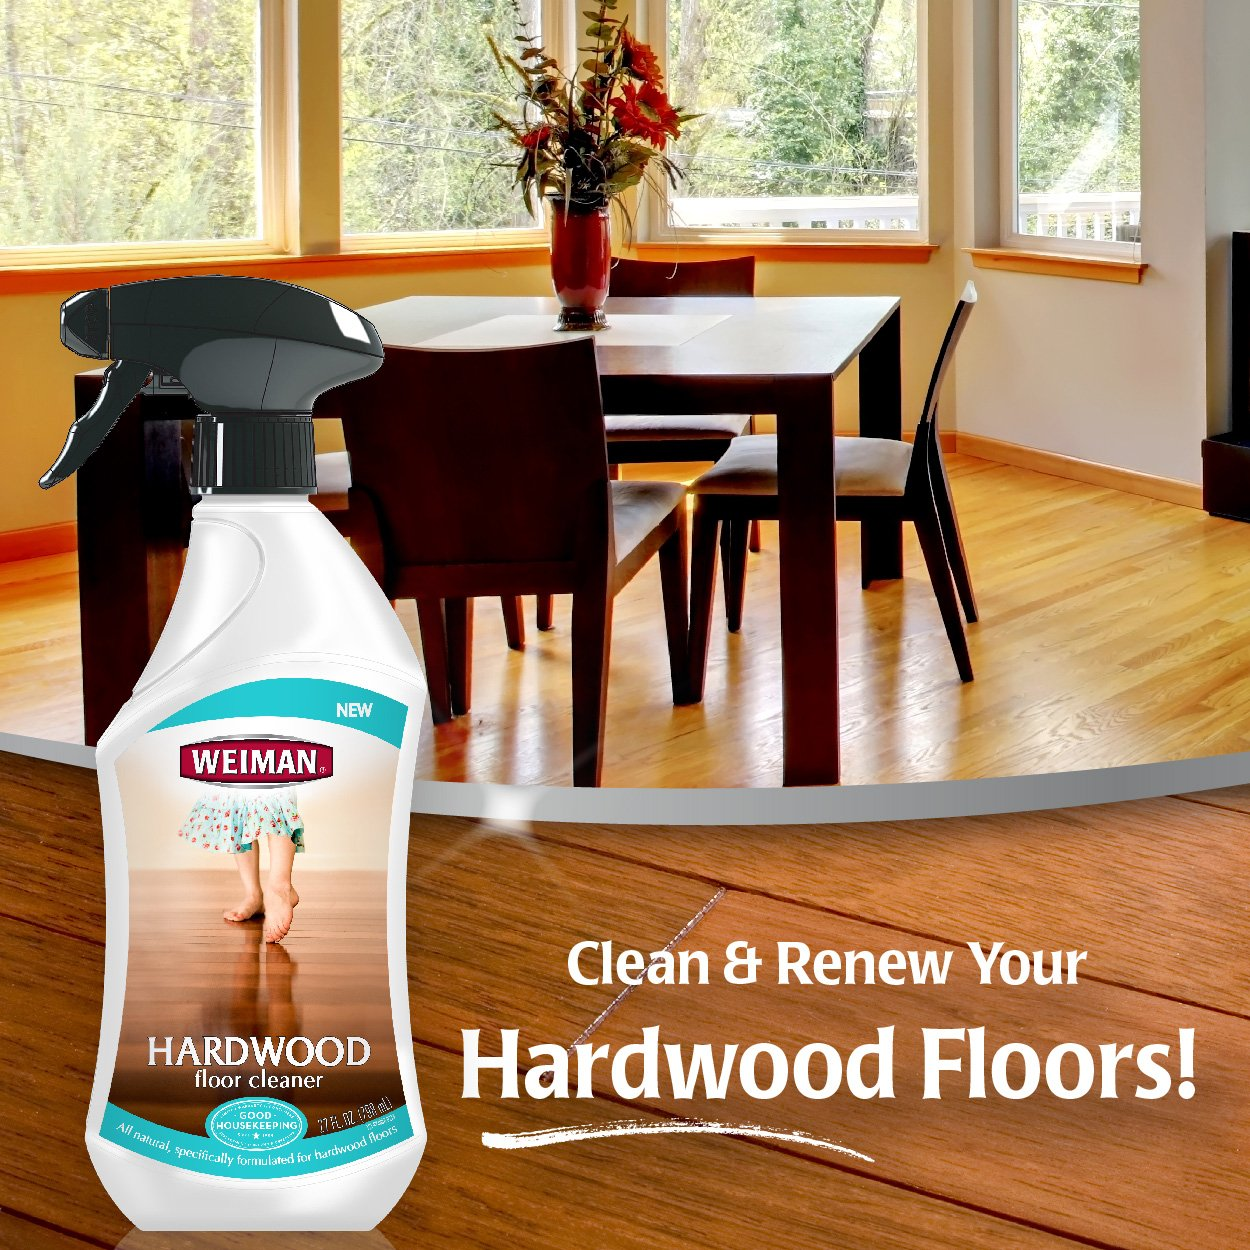 amazoncom weiman hardwood floor cleaner u2013 surface safe no harsh scent safe for use around kids and pets residue free u2013 27 oz trigger home u0026 kitchen